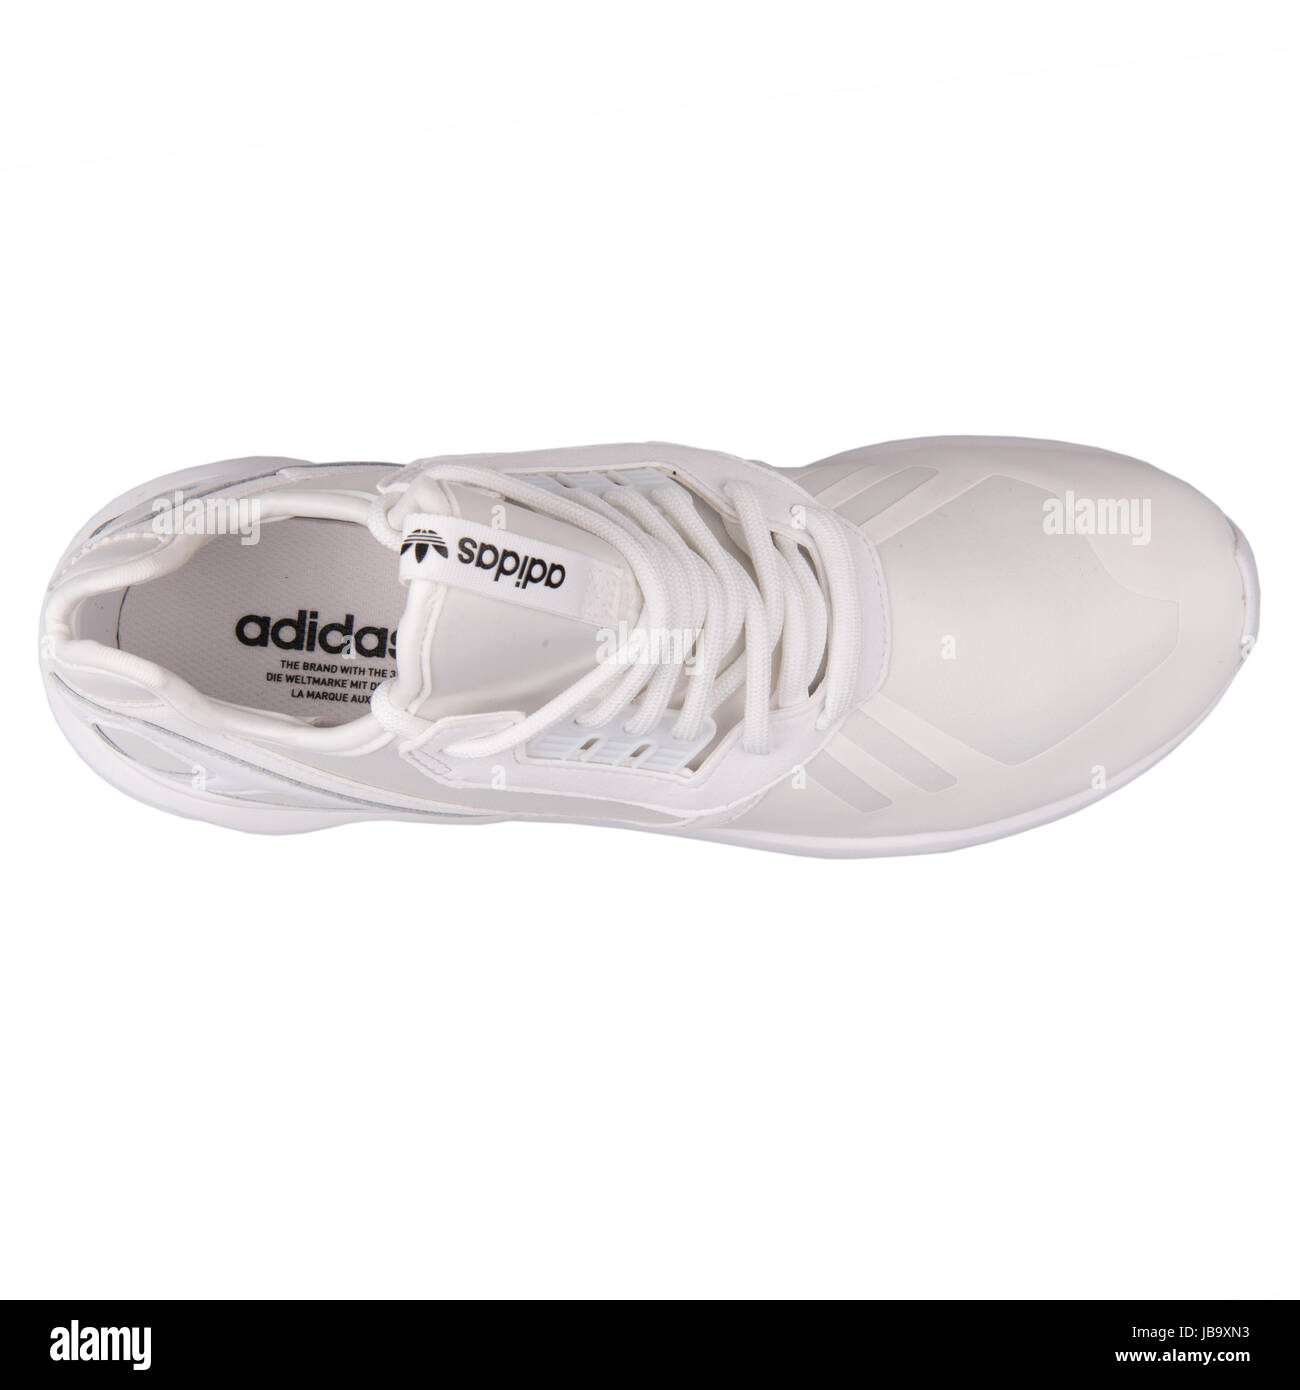 Adidas Tubular Runner White Men's Running Shoes - S83141 Stock Photo